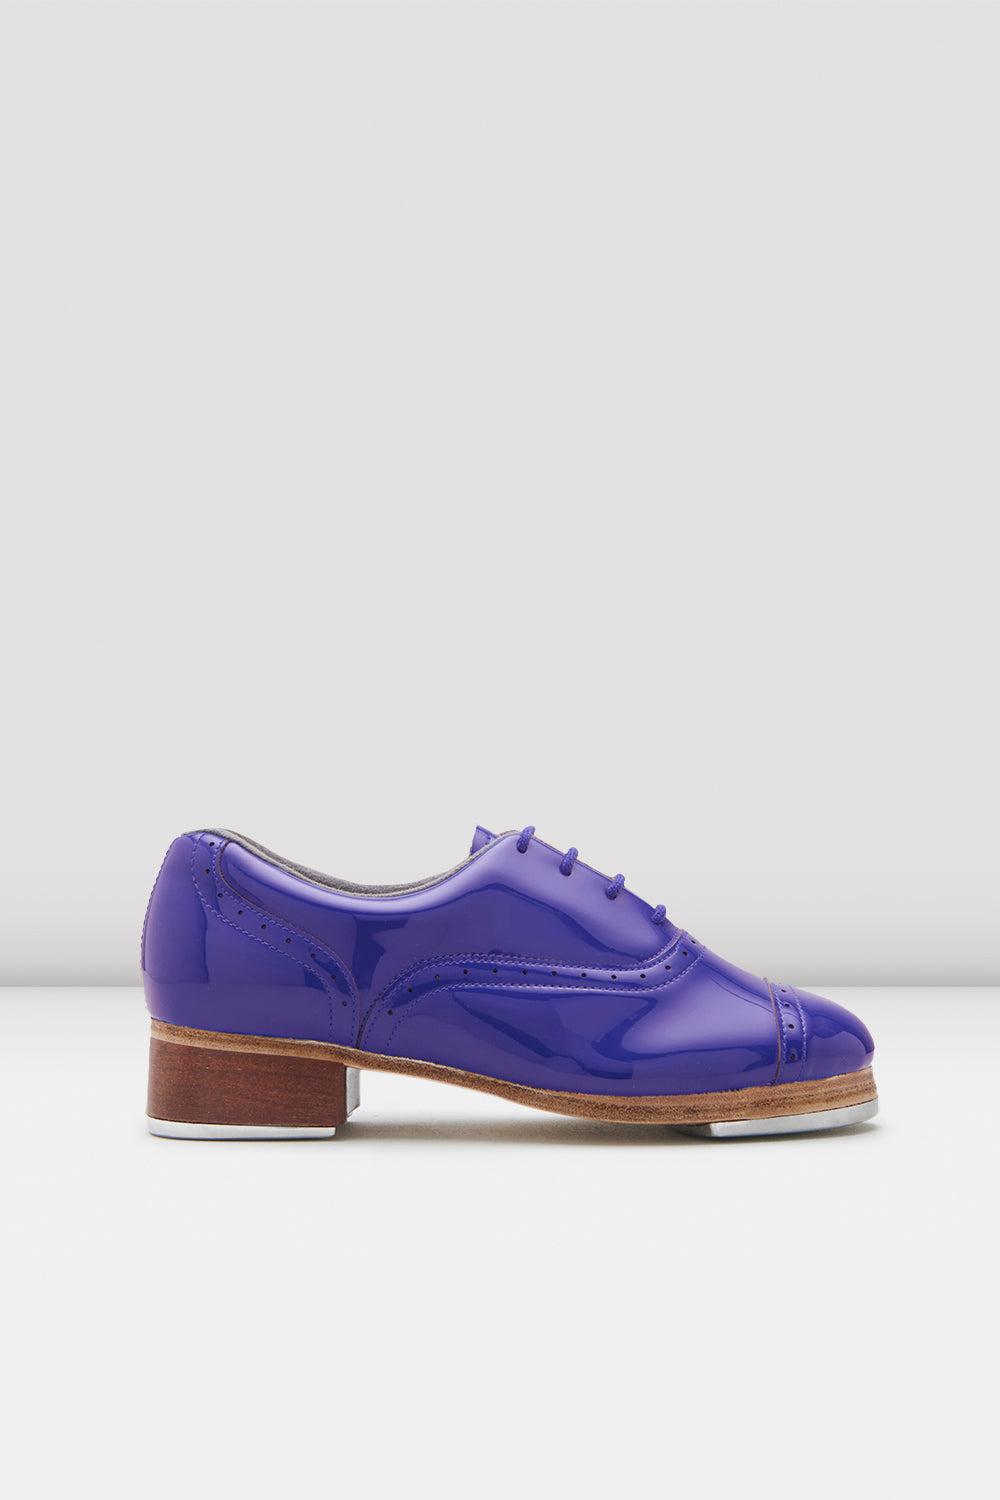 Dark blue patent Bloch Ladies Jason Samuels Smith Patent Tap Shoes single shoe side view